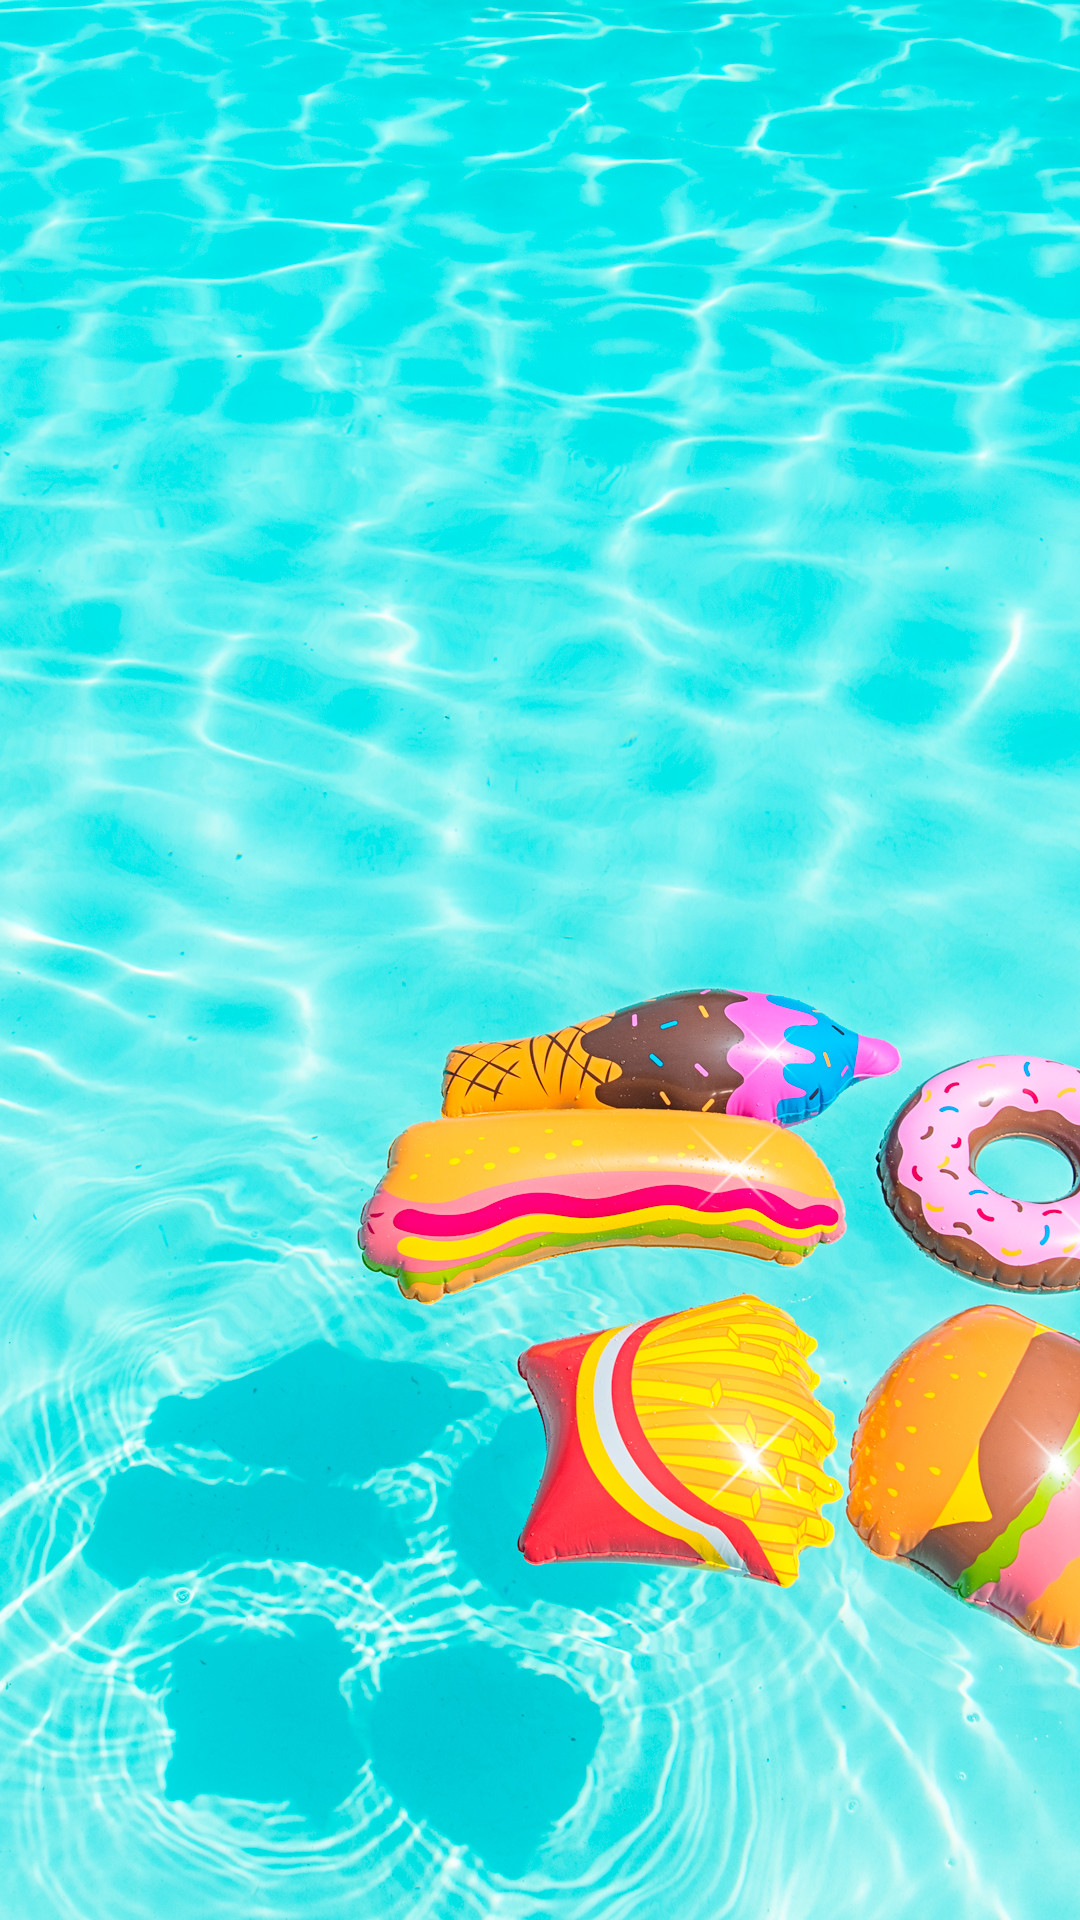 Cute summer wallpapers 55 images - Cute screensavers for kids ...